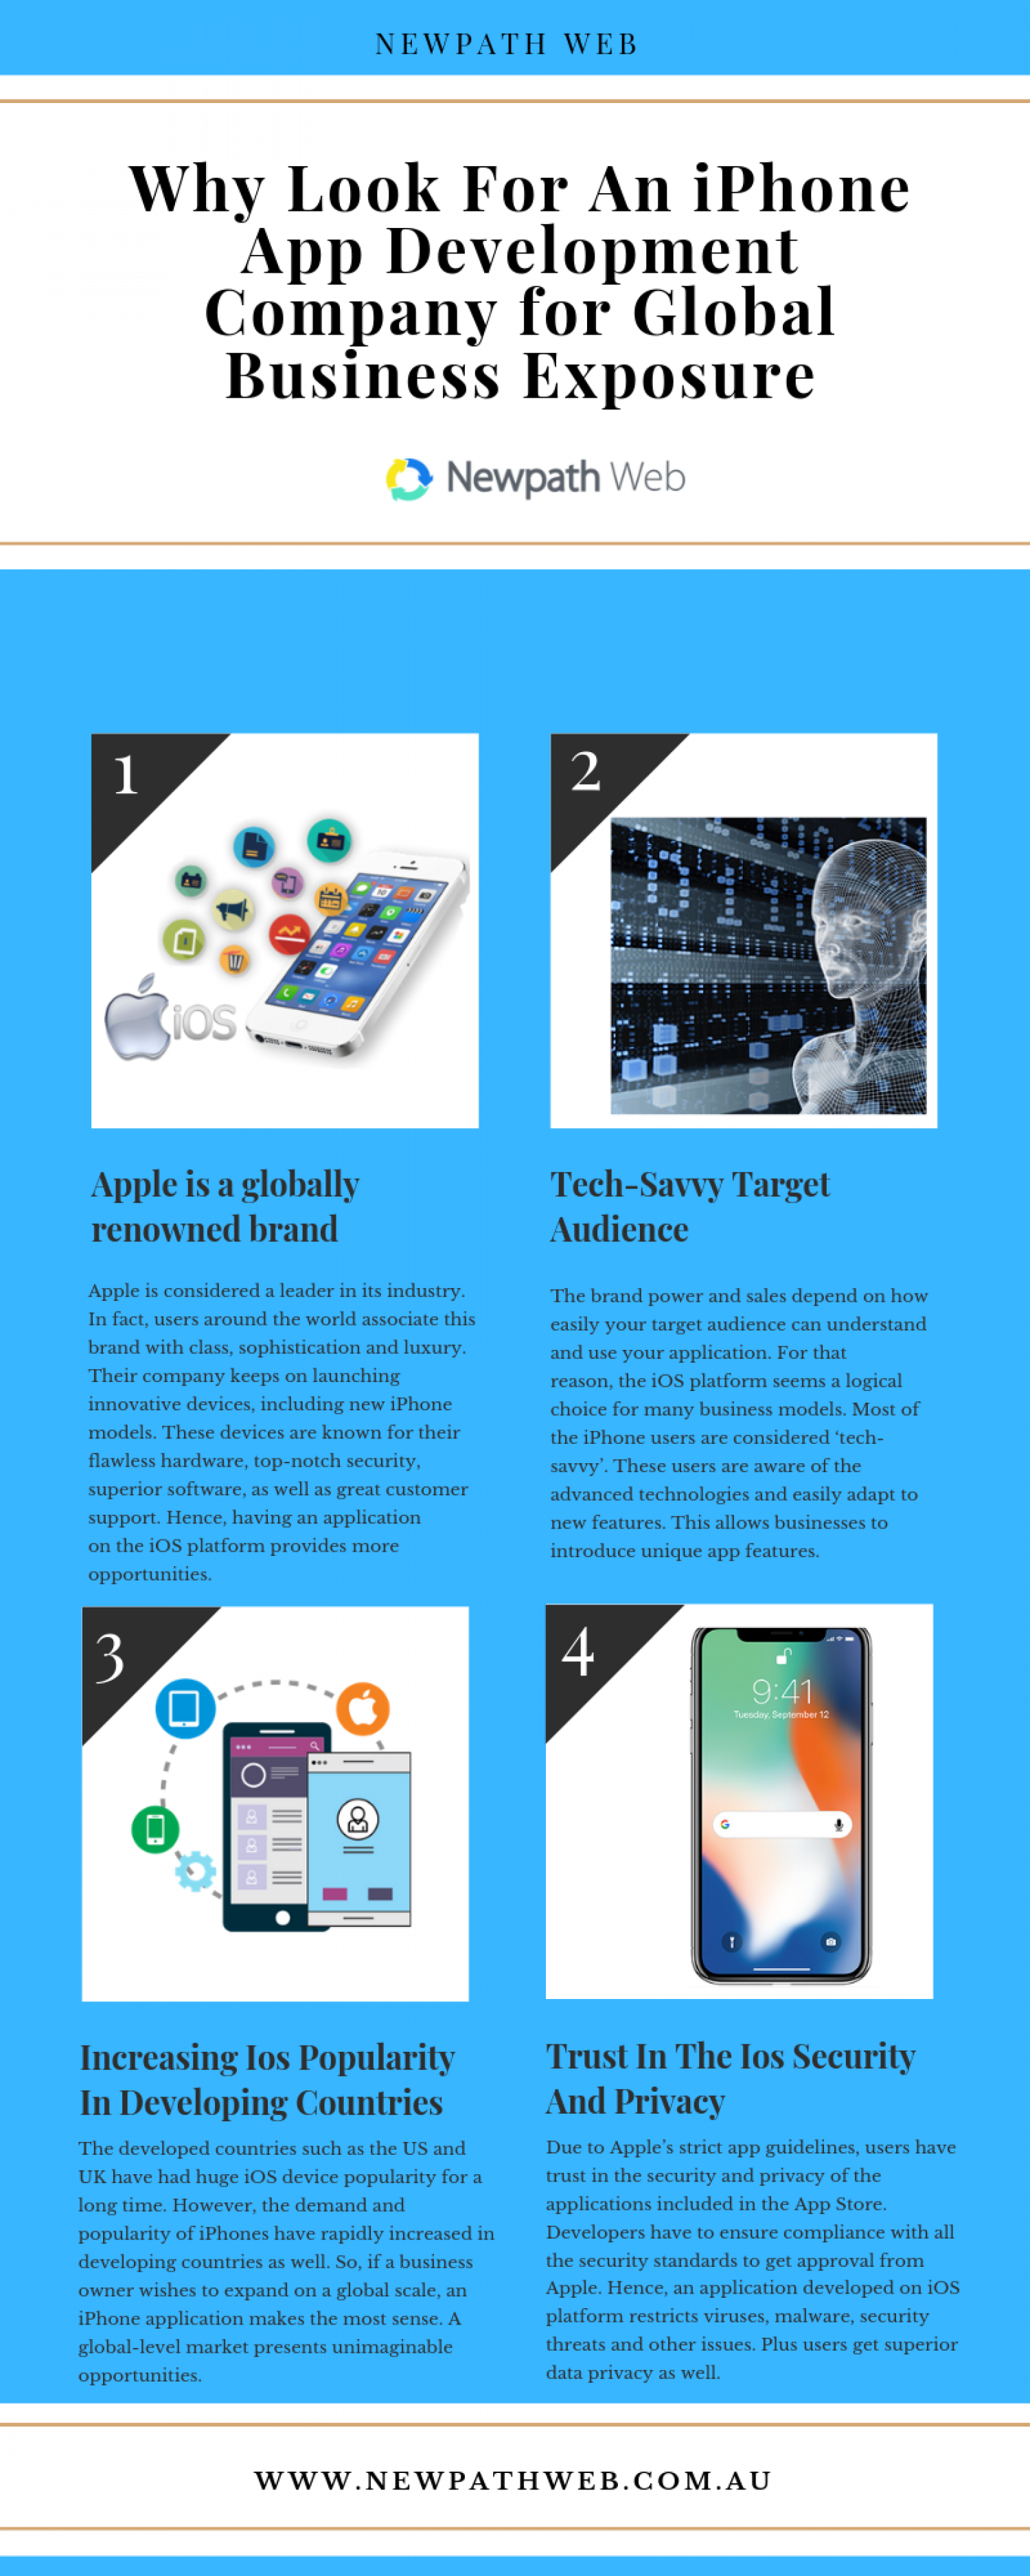 Why Look For An iPhone App Development Company for Global Business Exposure Infographic